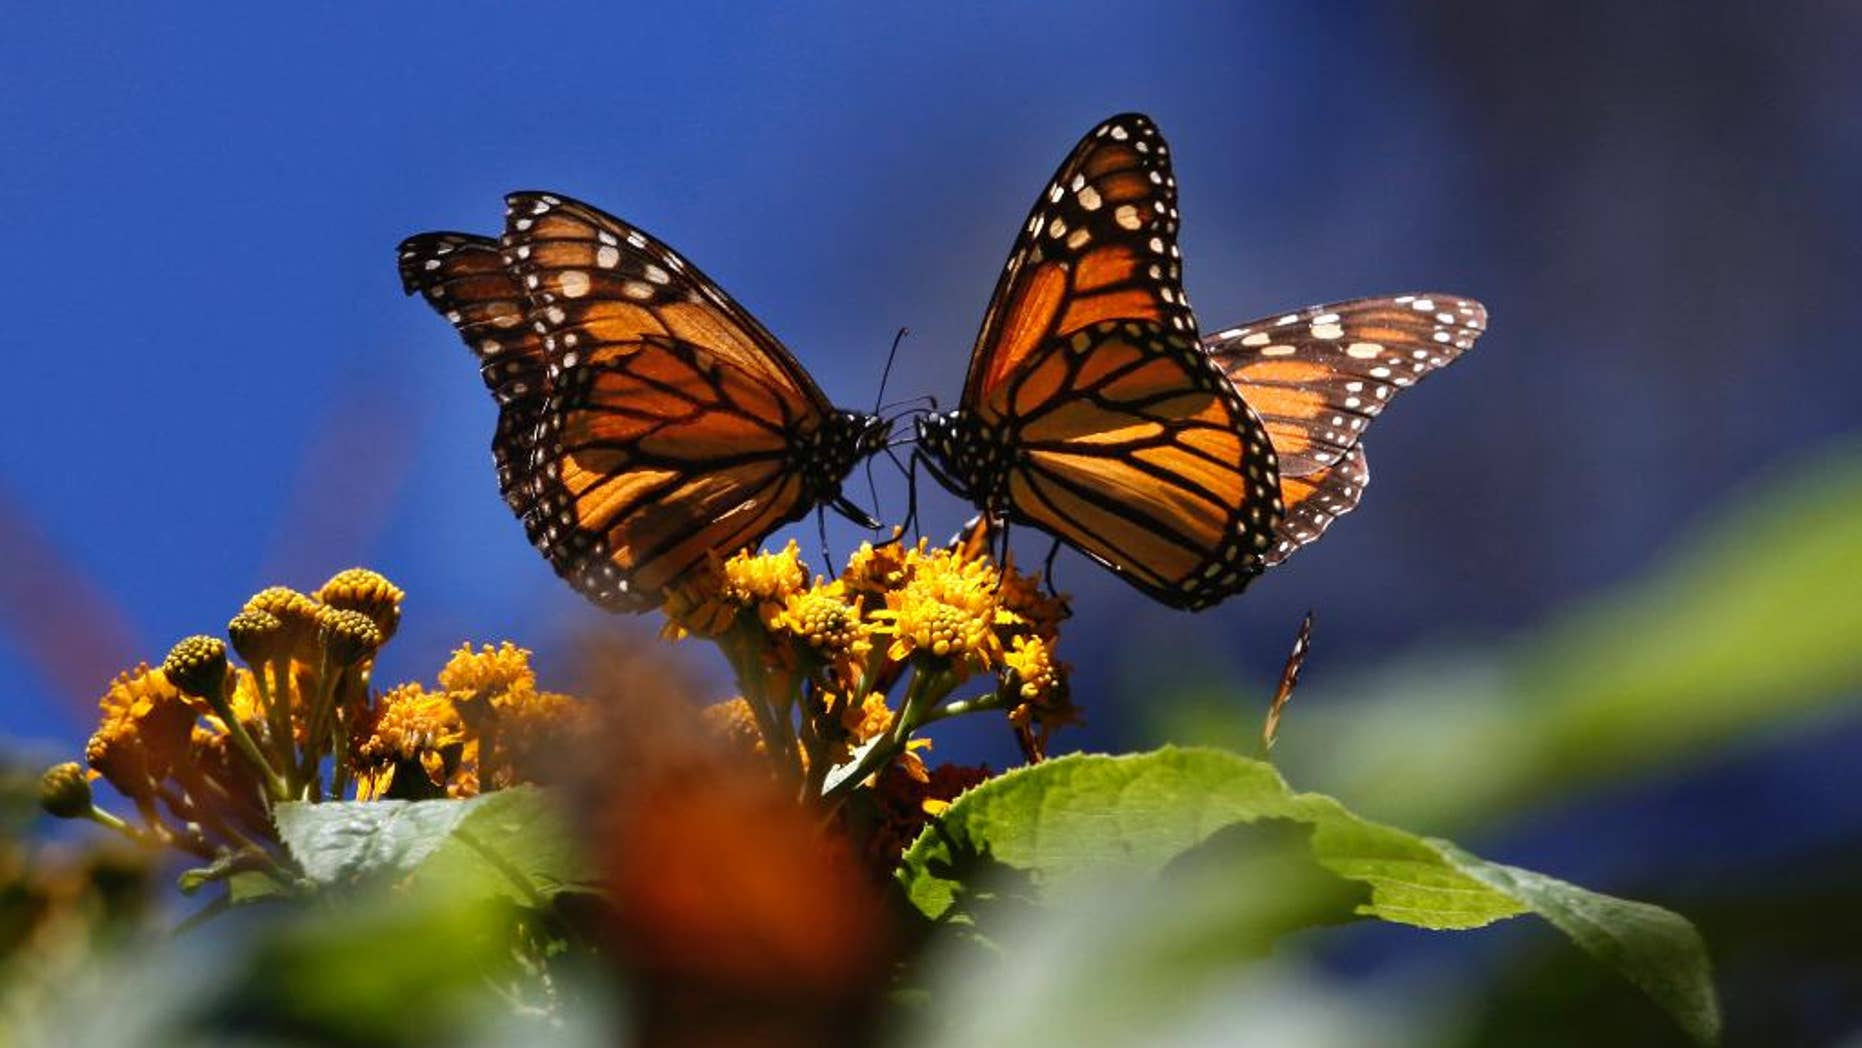 """FILE - In this Feb. 26, 2009 file photo, monarch butterflies gather on top of flowers at the Monarch Butterfly Biosphere Reserve, near the town of Chincua, Mexico. The head of Mexico's nature reserves, Luis Fueyo, said Tuesday, Sept. 23, 2014, the first butterflies have been seen entering Mexico earlier than usual this year. He said it is too early to say whether butterfly numbers will rebound this year from a series of sharp drops, but """"this premature presence could be the prelude to an increase in the migration."""" (AP Photo/Marco Ugarte, File)"""